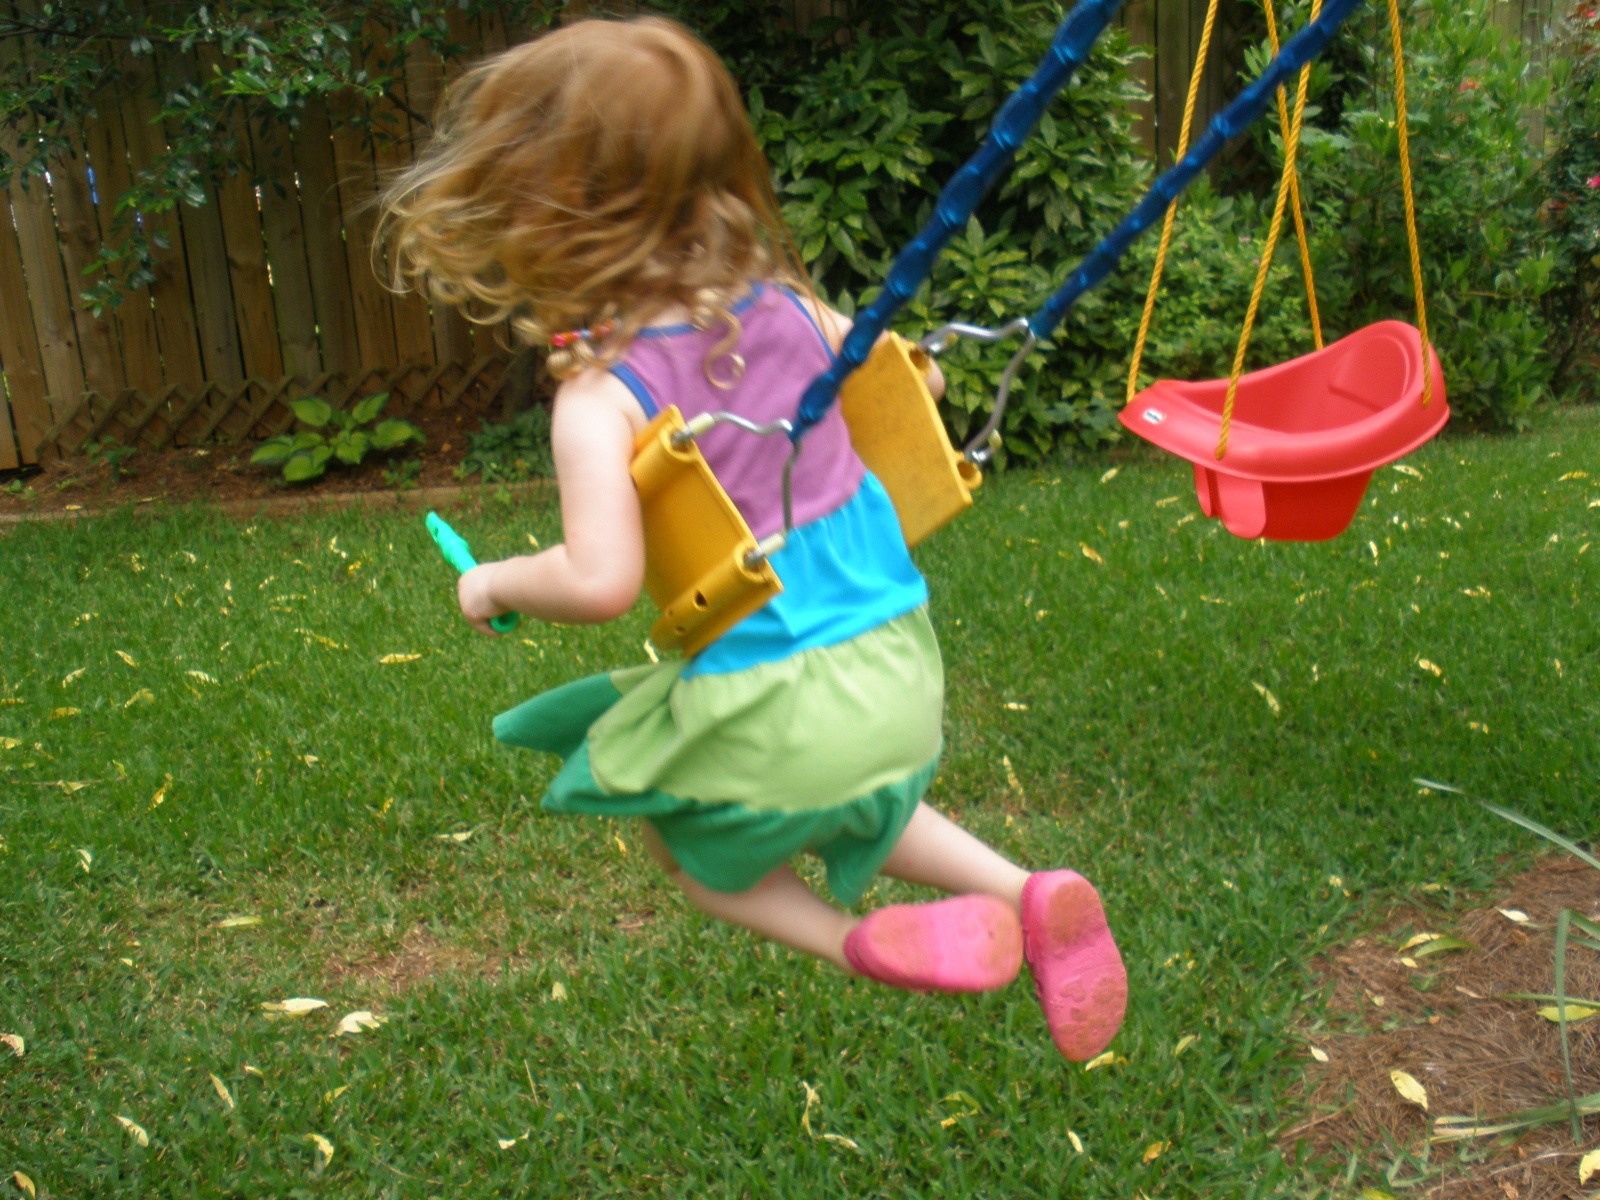 Playgrounds aren't just a place for fun and games. They can be a place for accidents if children are left unsupervised.